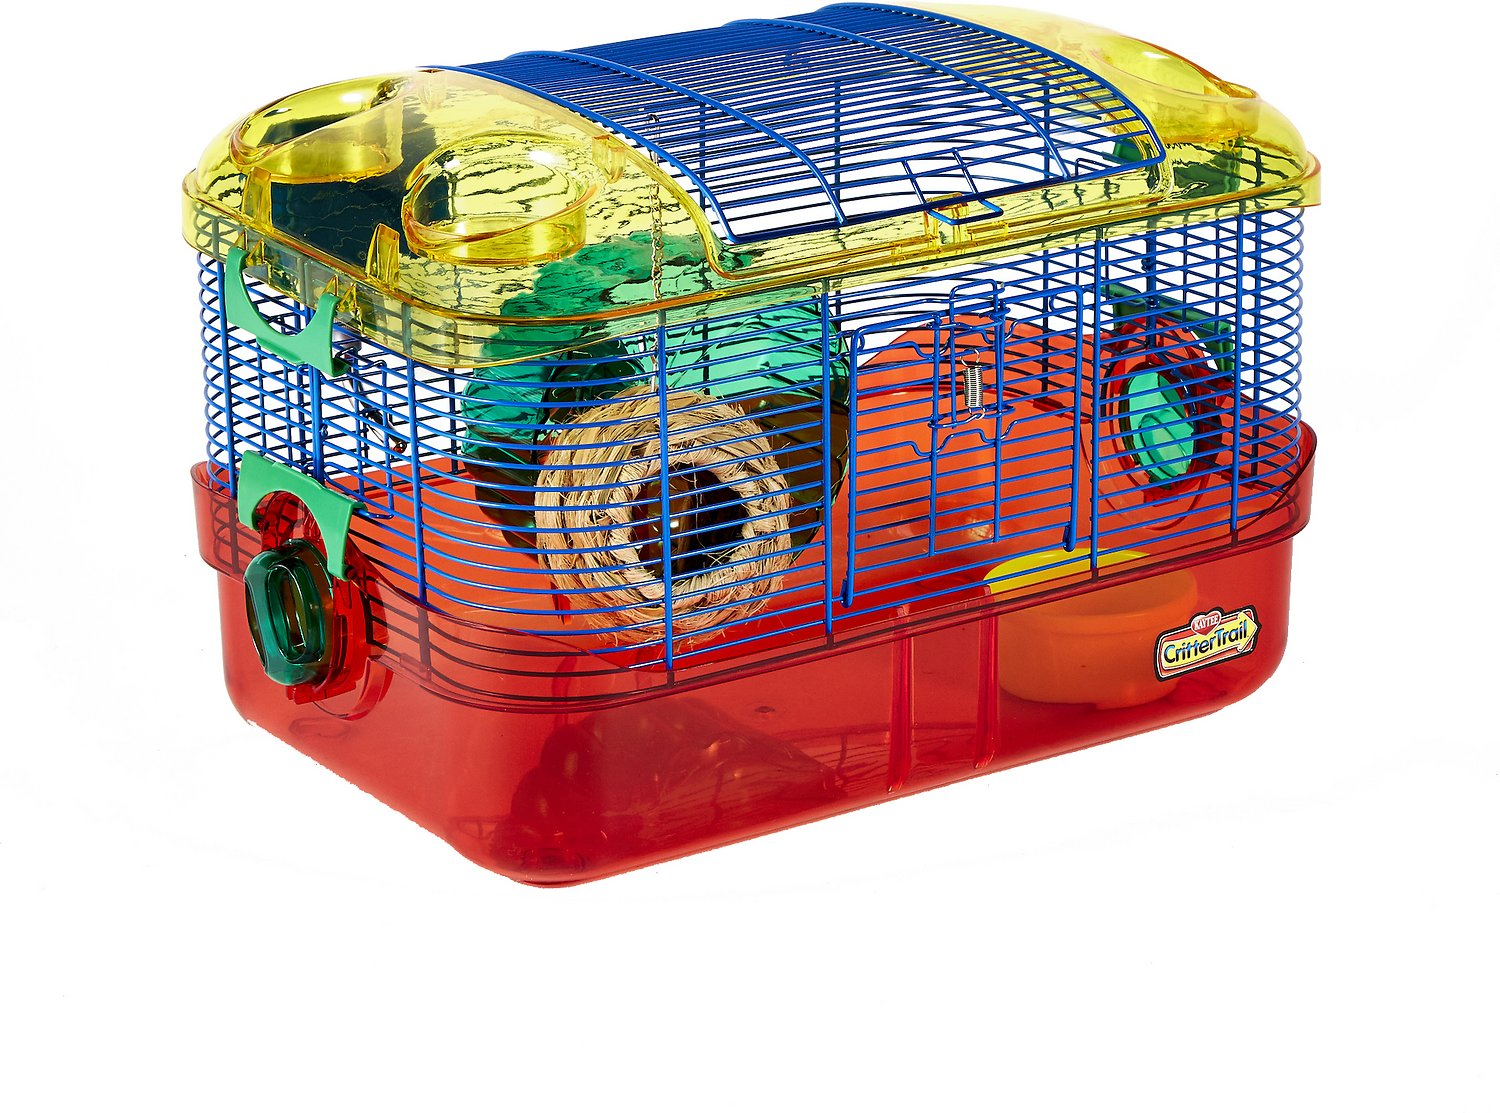 kaytee crittertrail primary small animal habitat 16 in chewy com